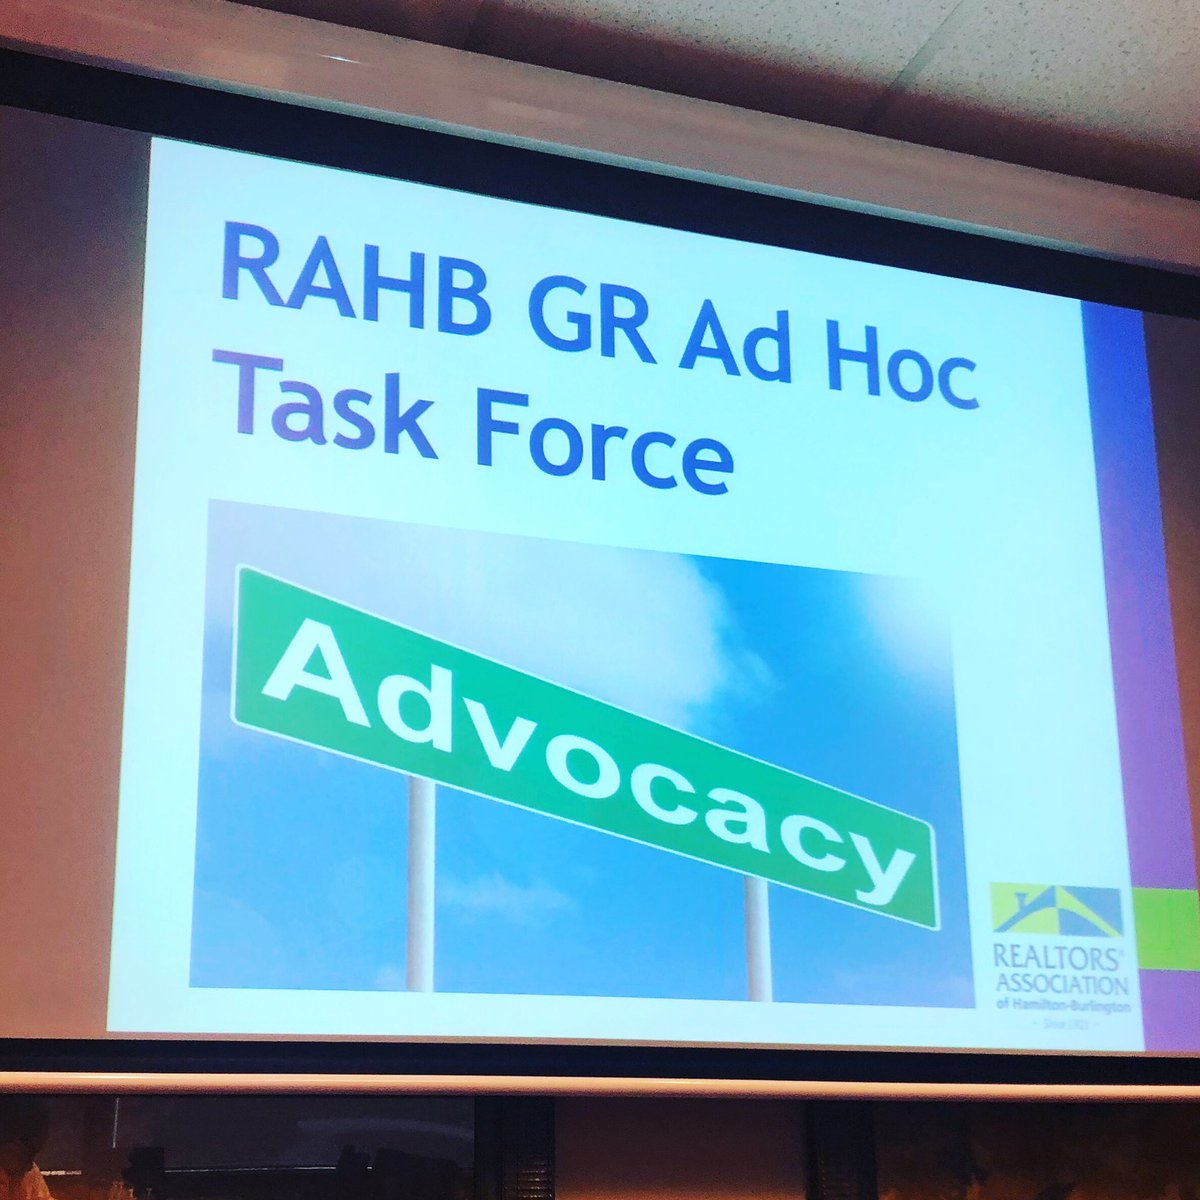 Volunteer at our Board for the Government Relations Ad Hoc Task Force Committee.   #Burlington #Ward6 #Hamilton #Halimand #Niagara #realtor #realestate #governmentrelations #keepingapulse #communitymatters #Burlon #Burlont #Hamon #Hamont #advocacy